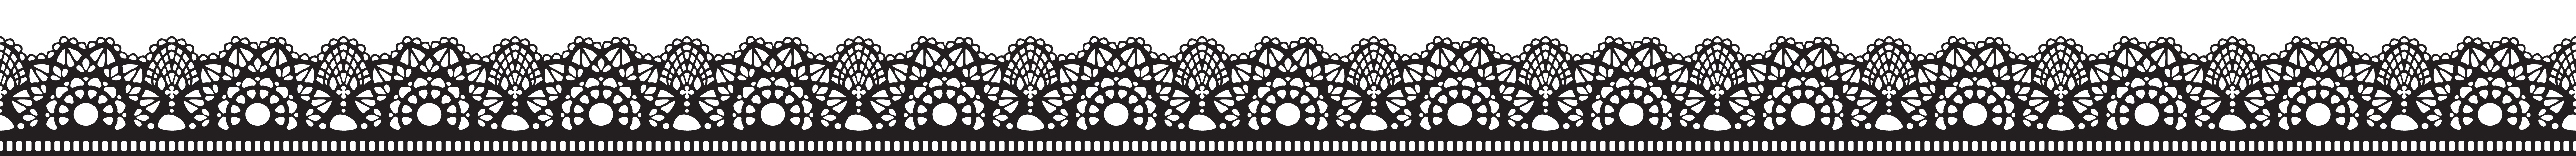 Lace border clipart image free download Lace border clipart clipart images gallery for free download ... image free download